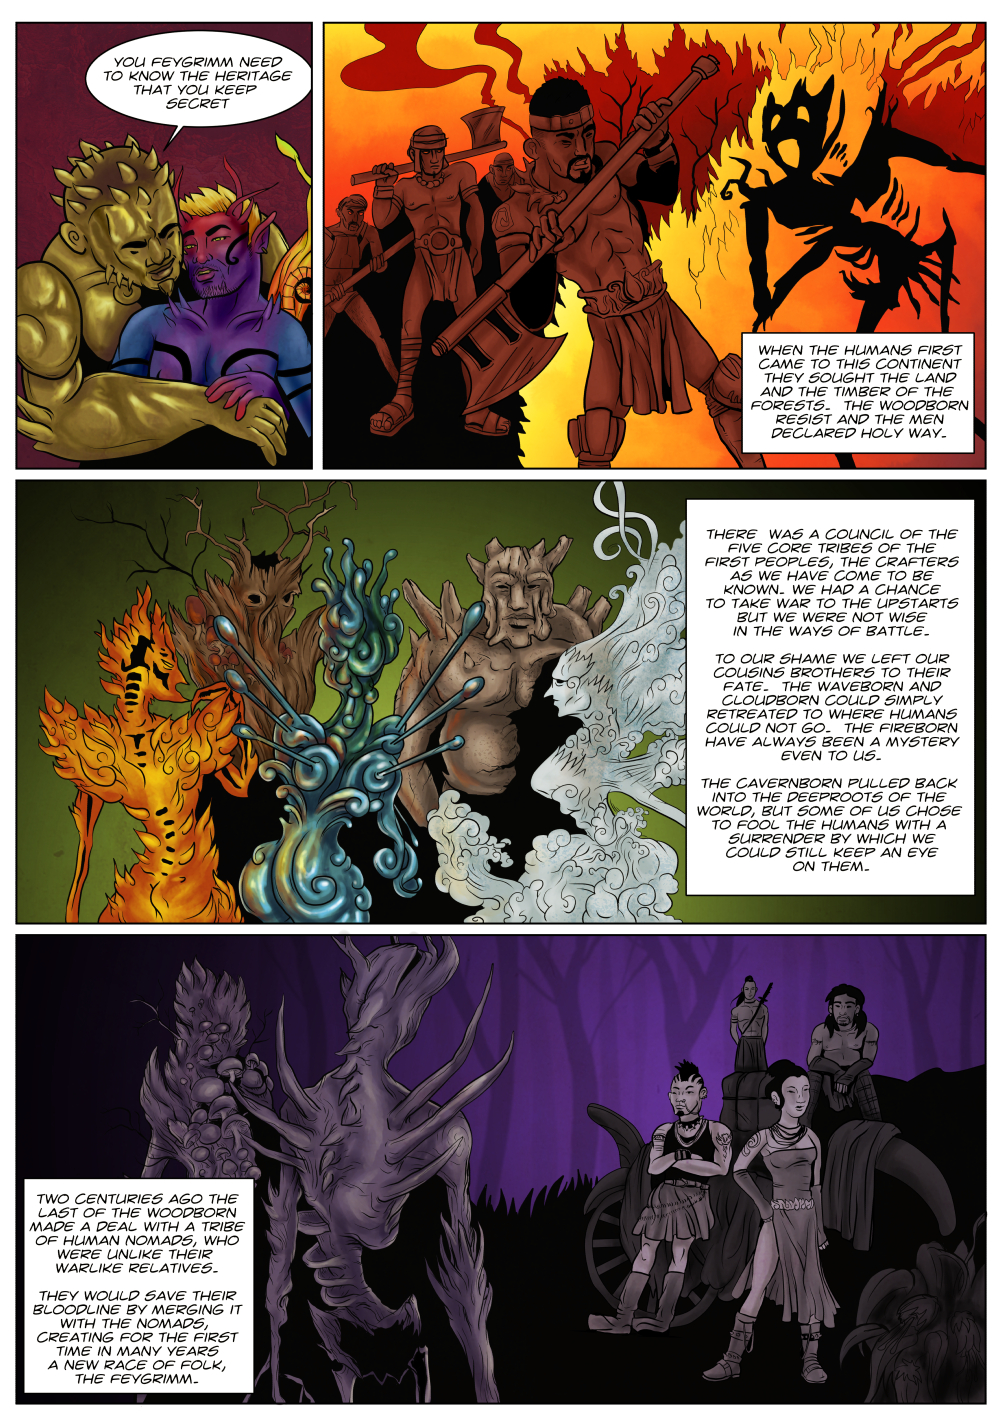 The Smith page 6